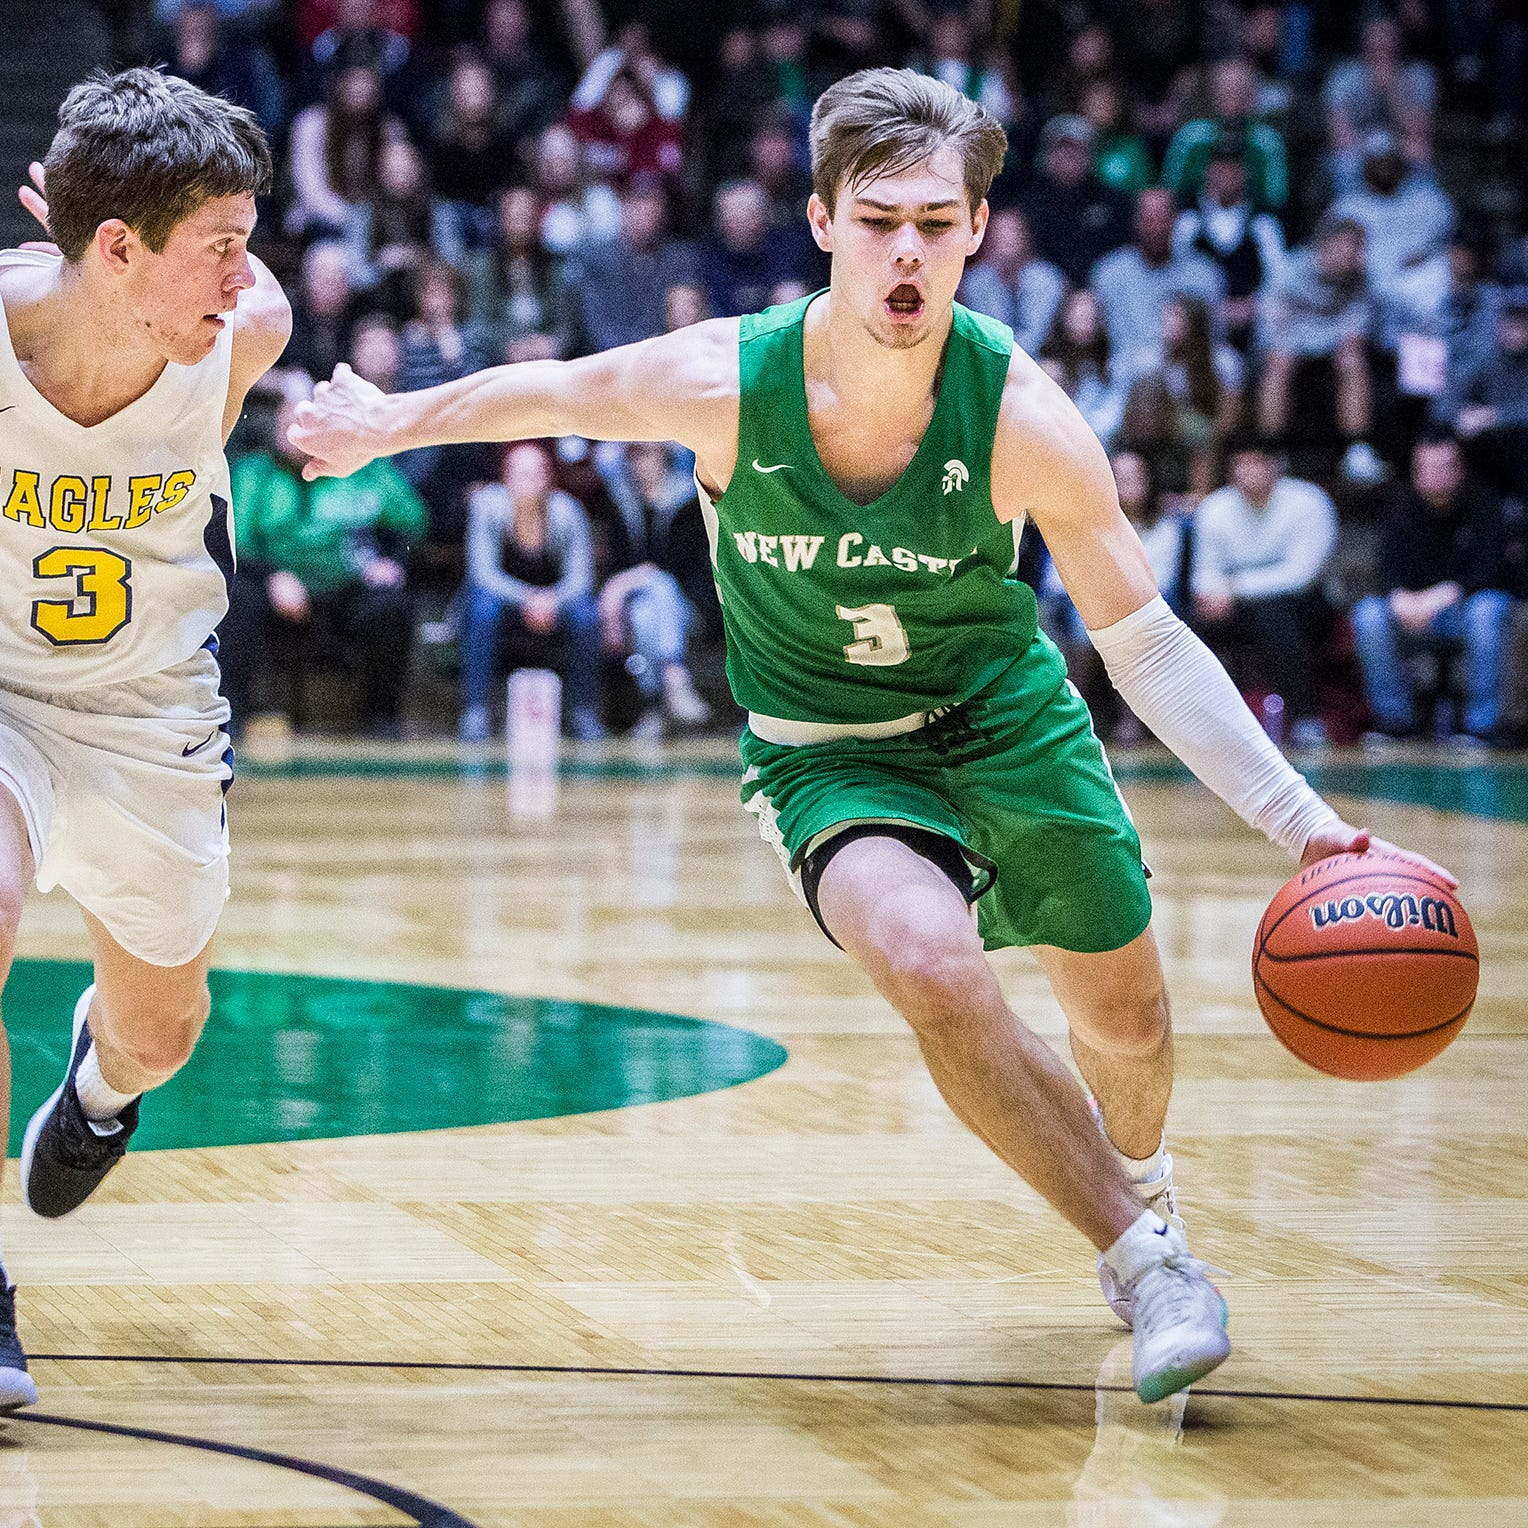 5 questions: How New Castle star Luke Bumbalough gravitated to basketball and more